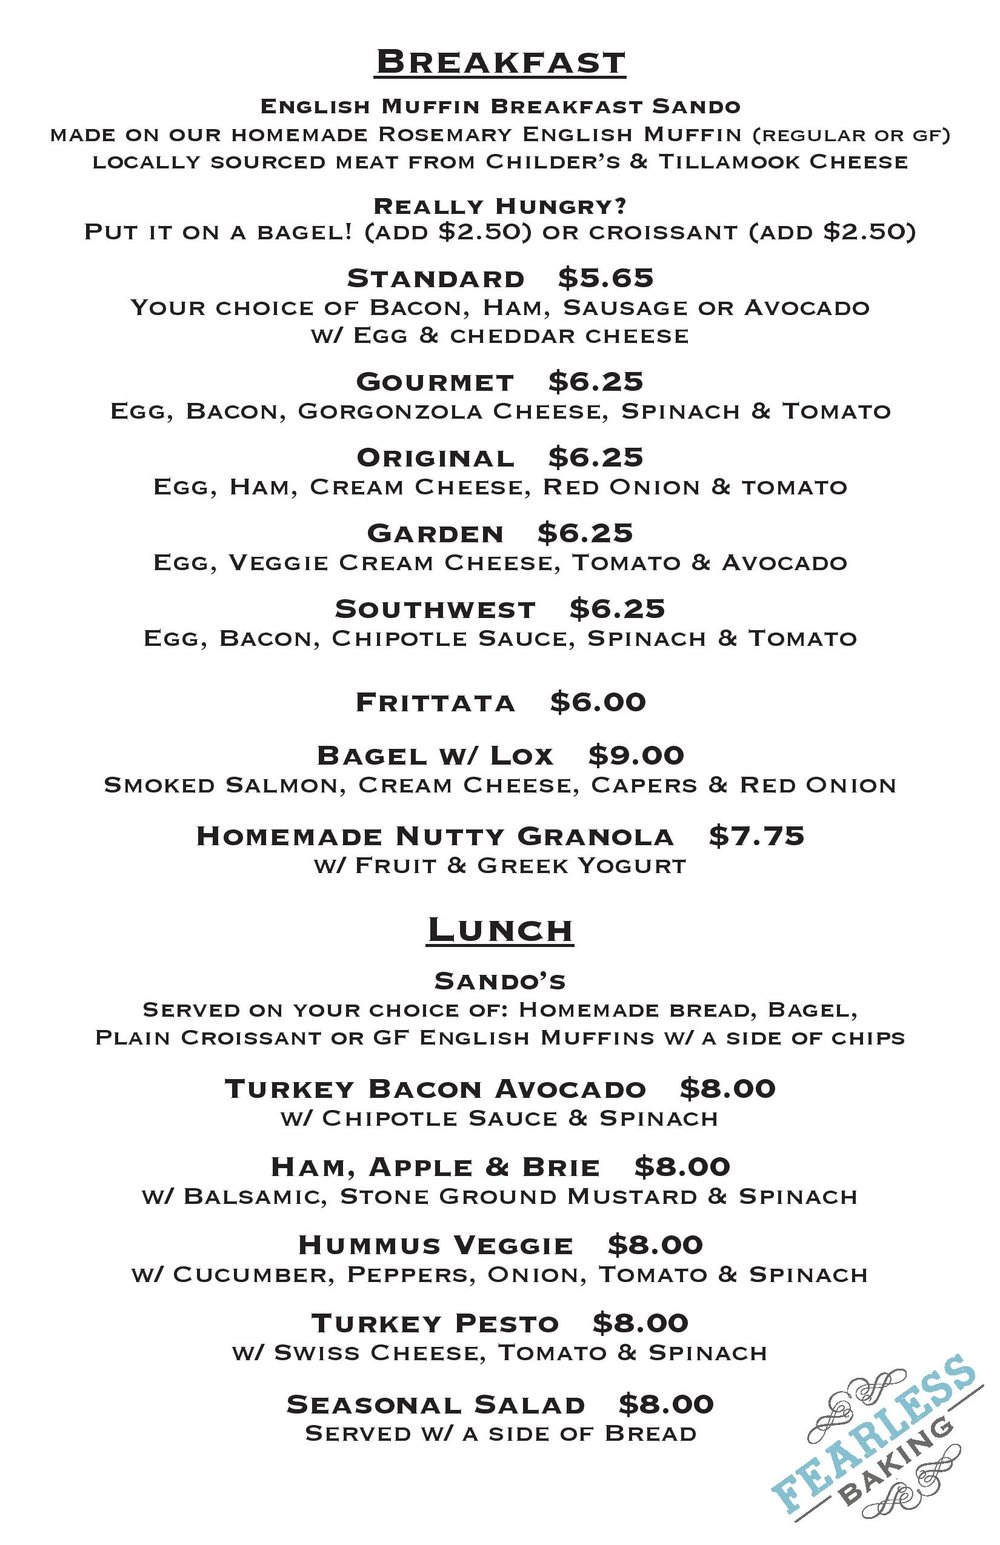 110_Fearless Breaky Menu_proof-page-001.jpg